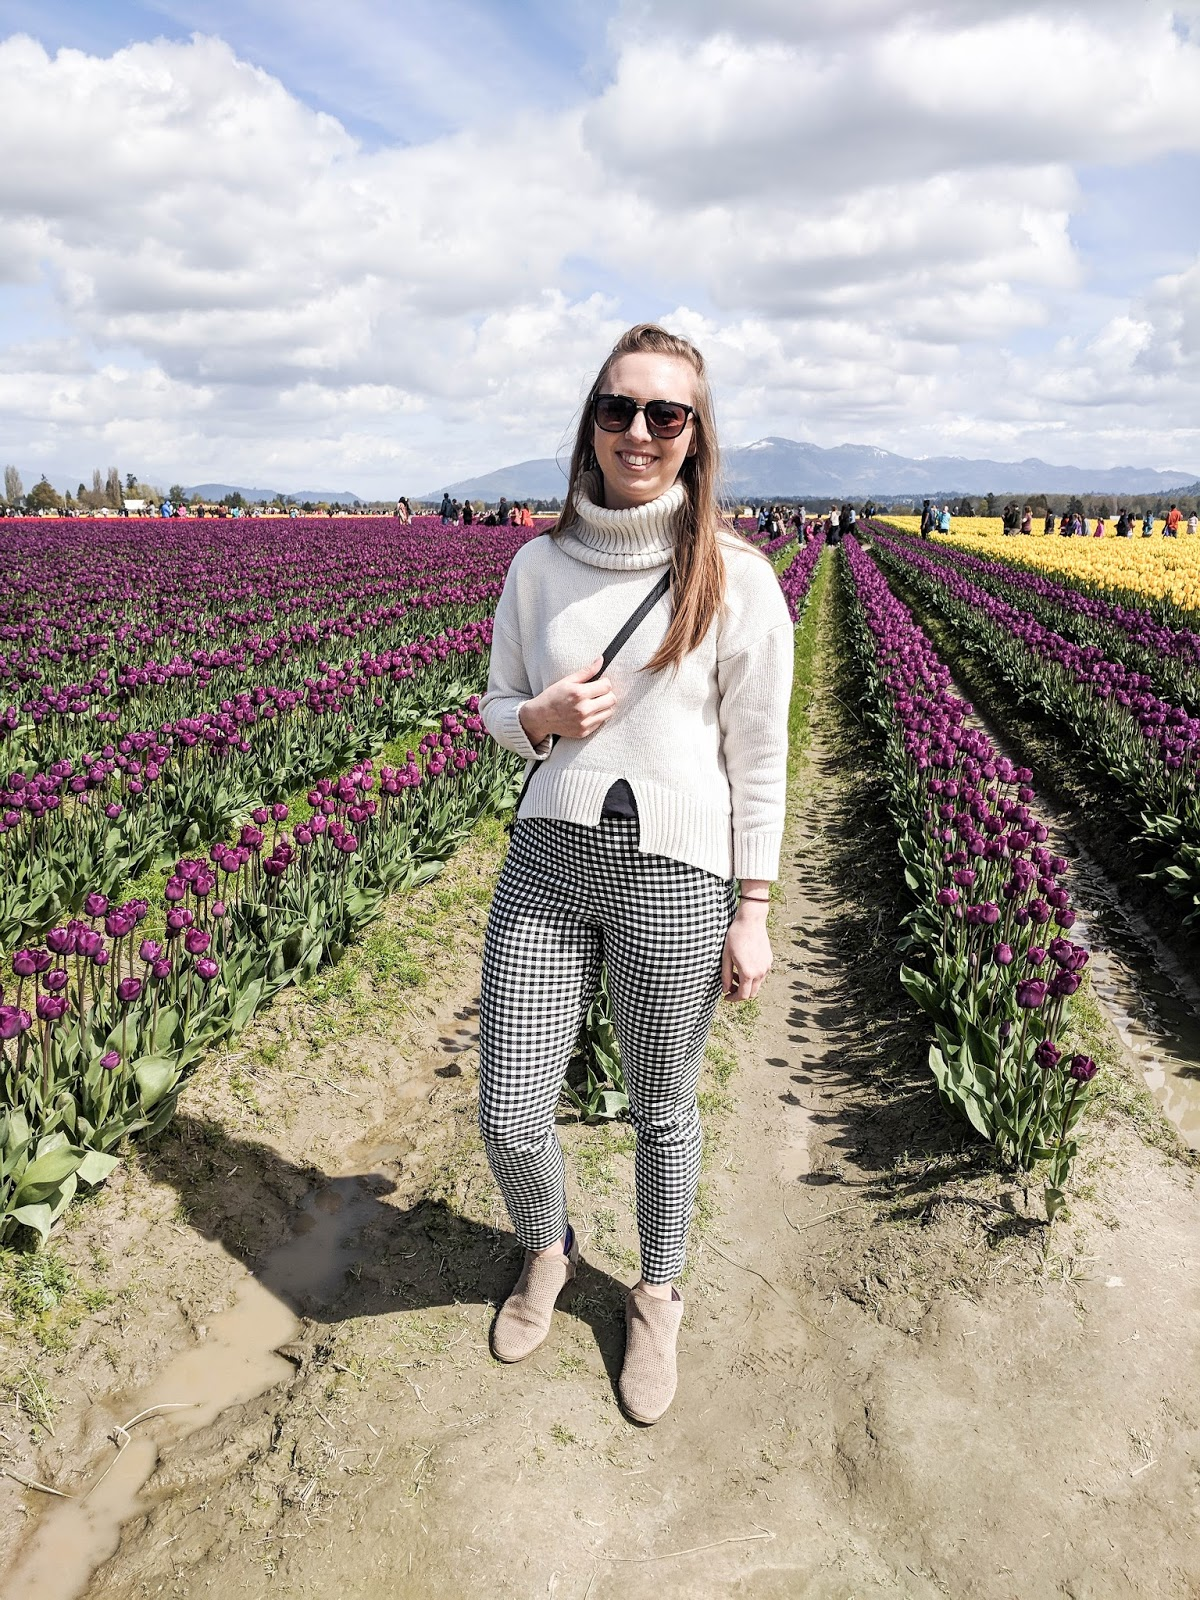 Visiting The Skagit Valley Tulip Festival | Kayla Lynn